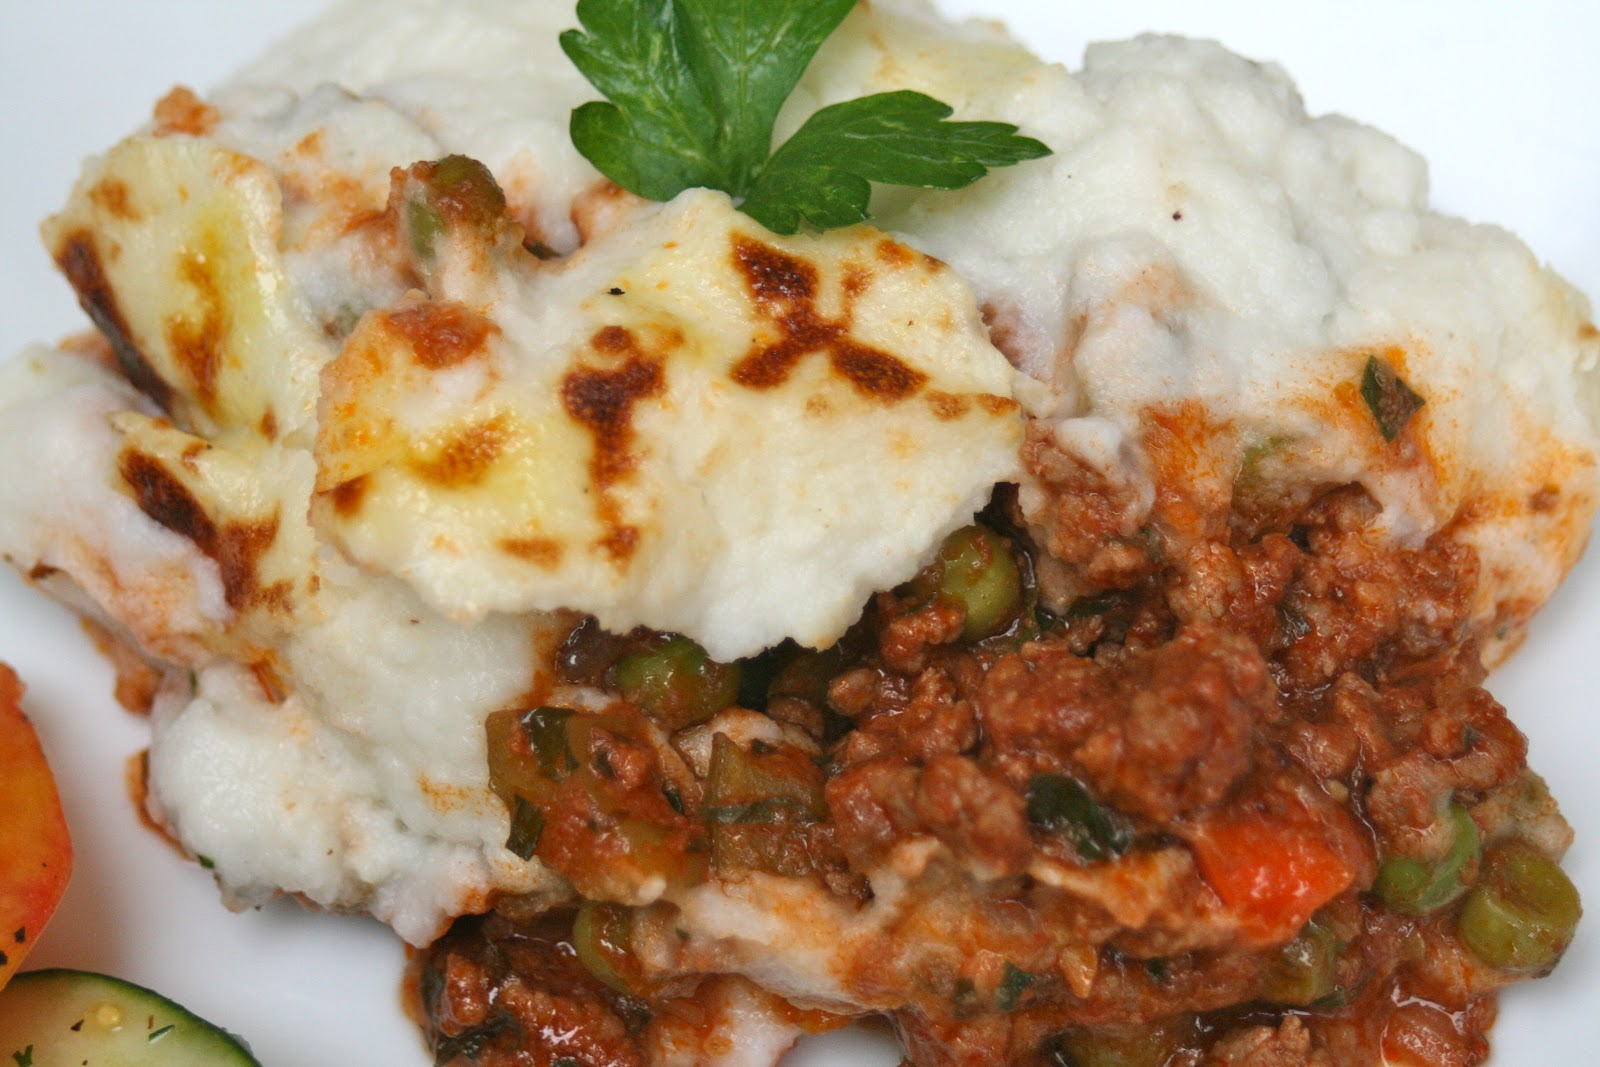 CupcakesOMG!: Paleo Shepherd's Pie, Minus the Shepherd Part